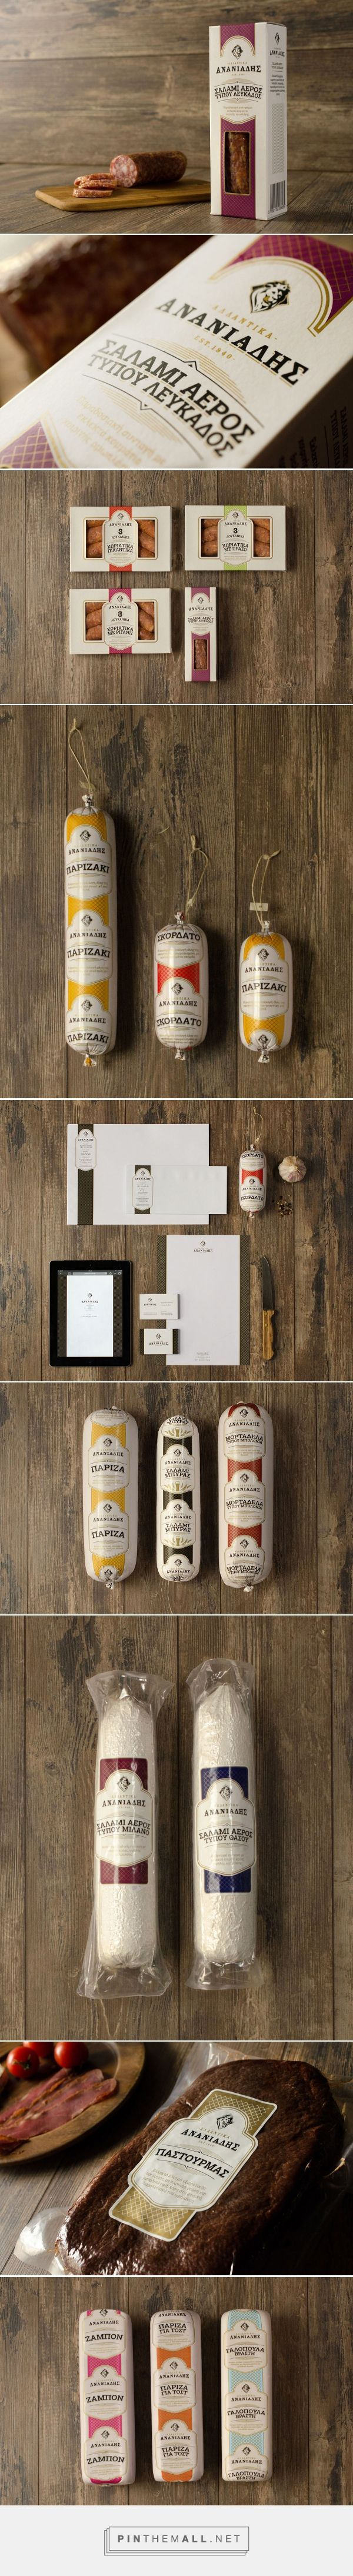 Ananiadis charcuterie package design on Behance by Artware Branding curated by Packaging Diva PD. Unique sausages and other tasty charcuterie offerings.